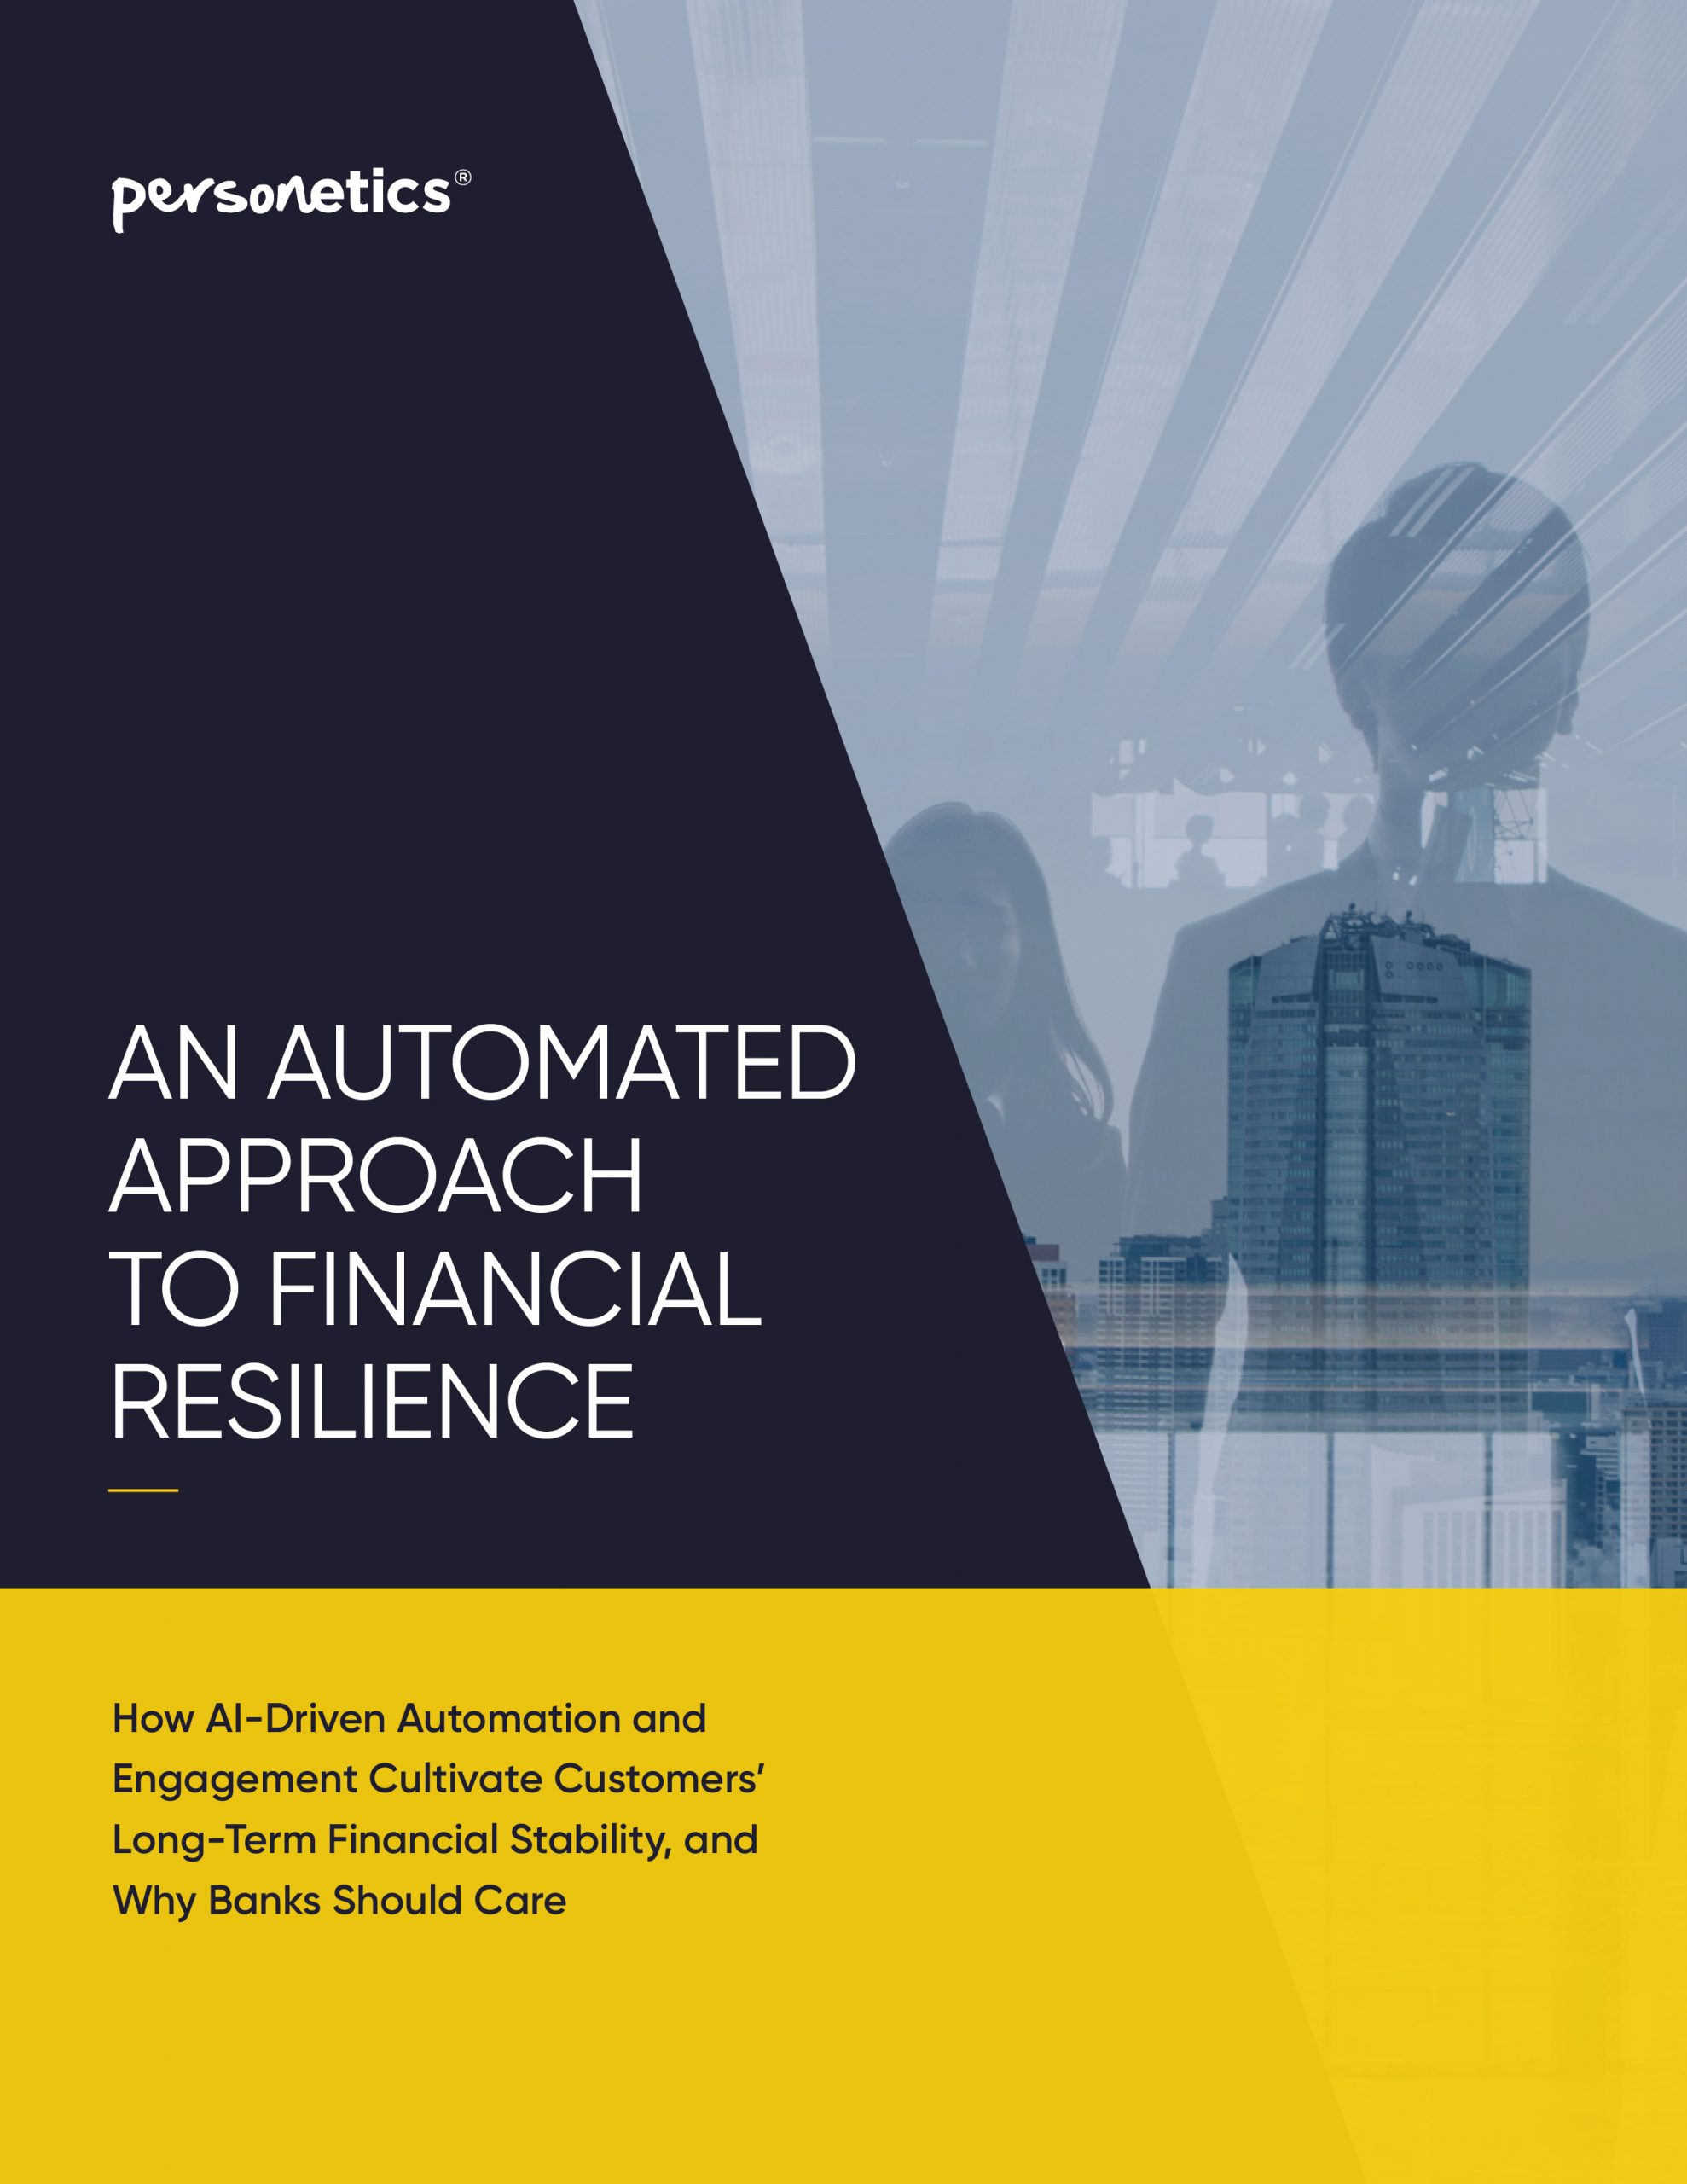 AN AUTOMATED APPROACH TO FINANCIAL RESILIENCE